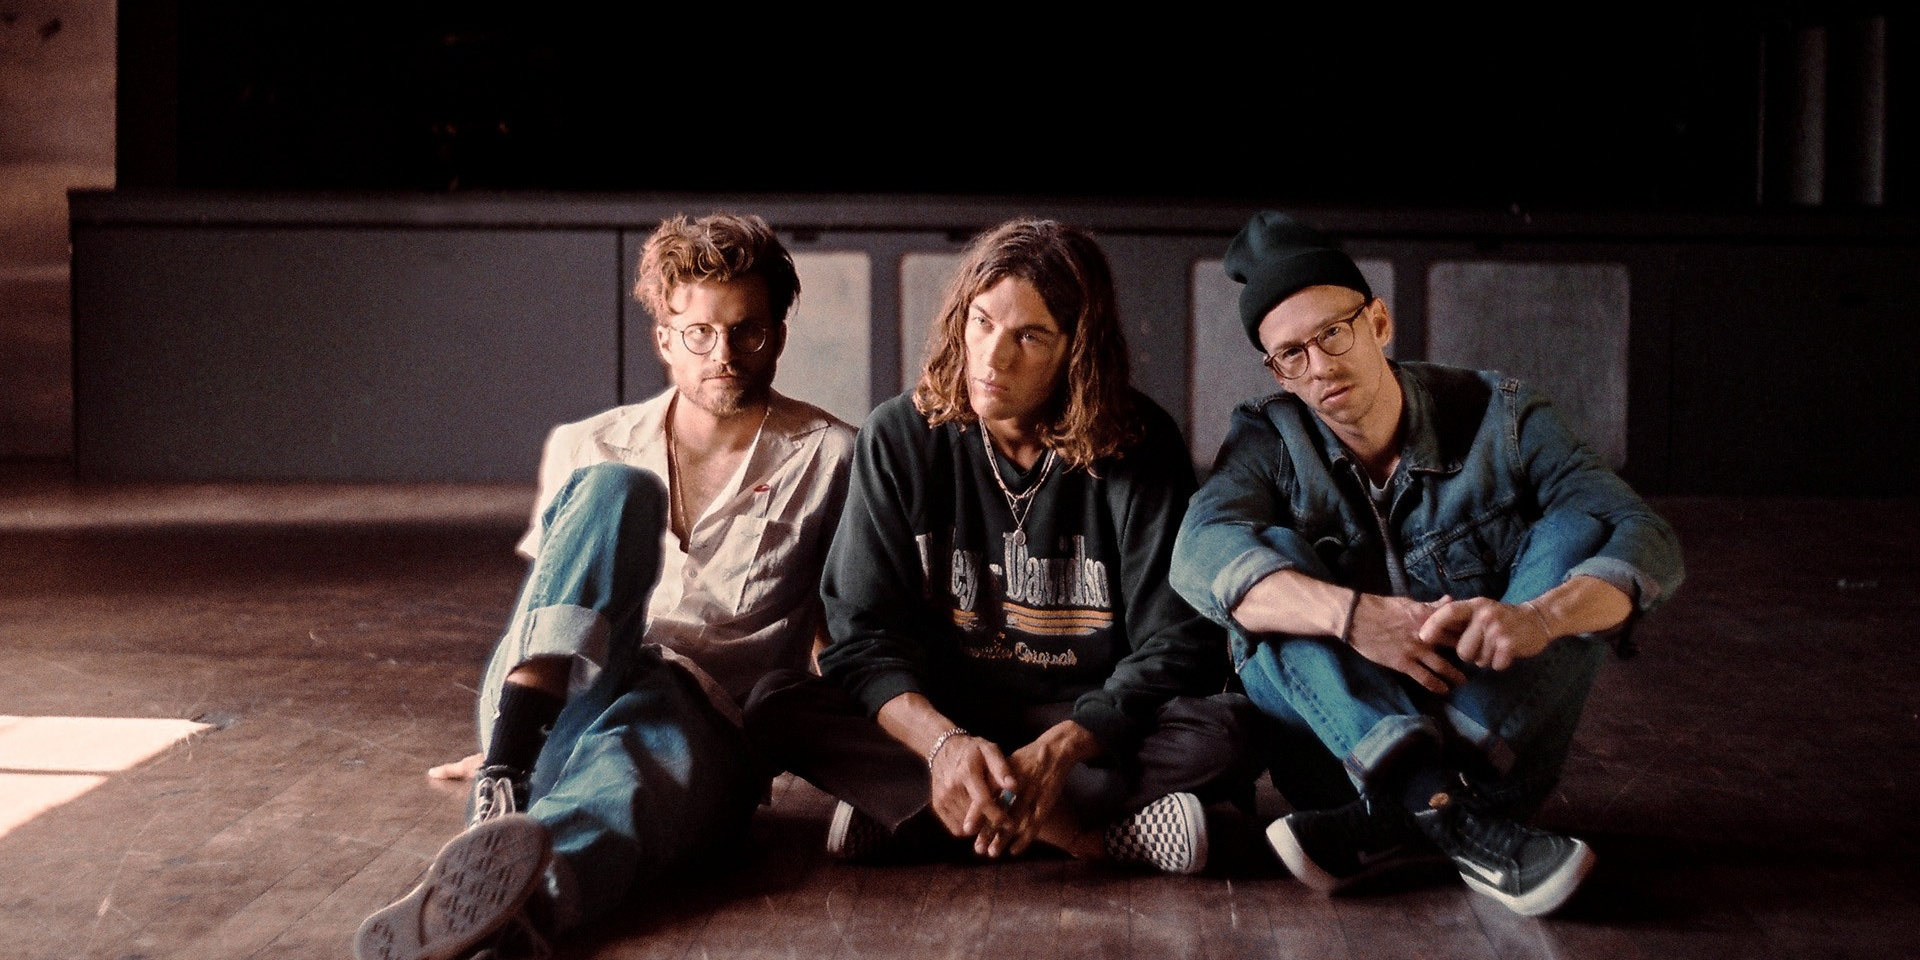 Get a chance to meet-and-greet LANY – contest